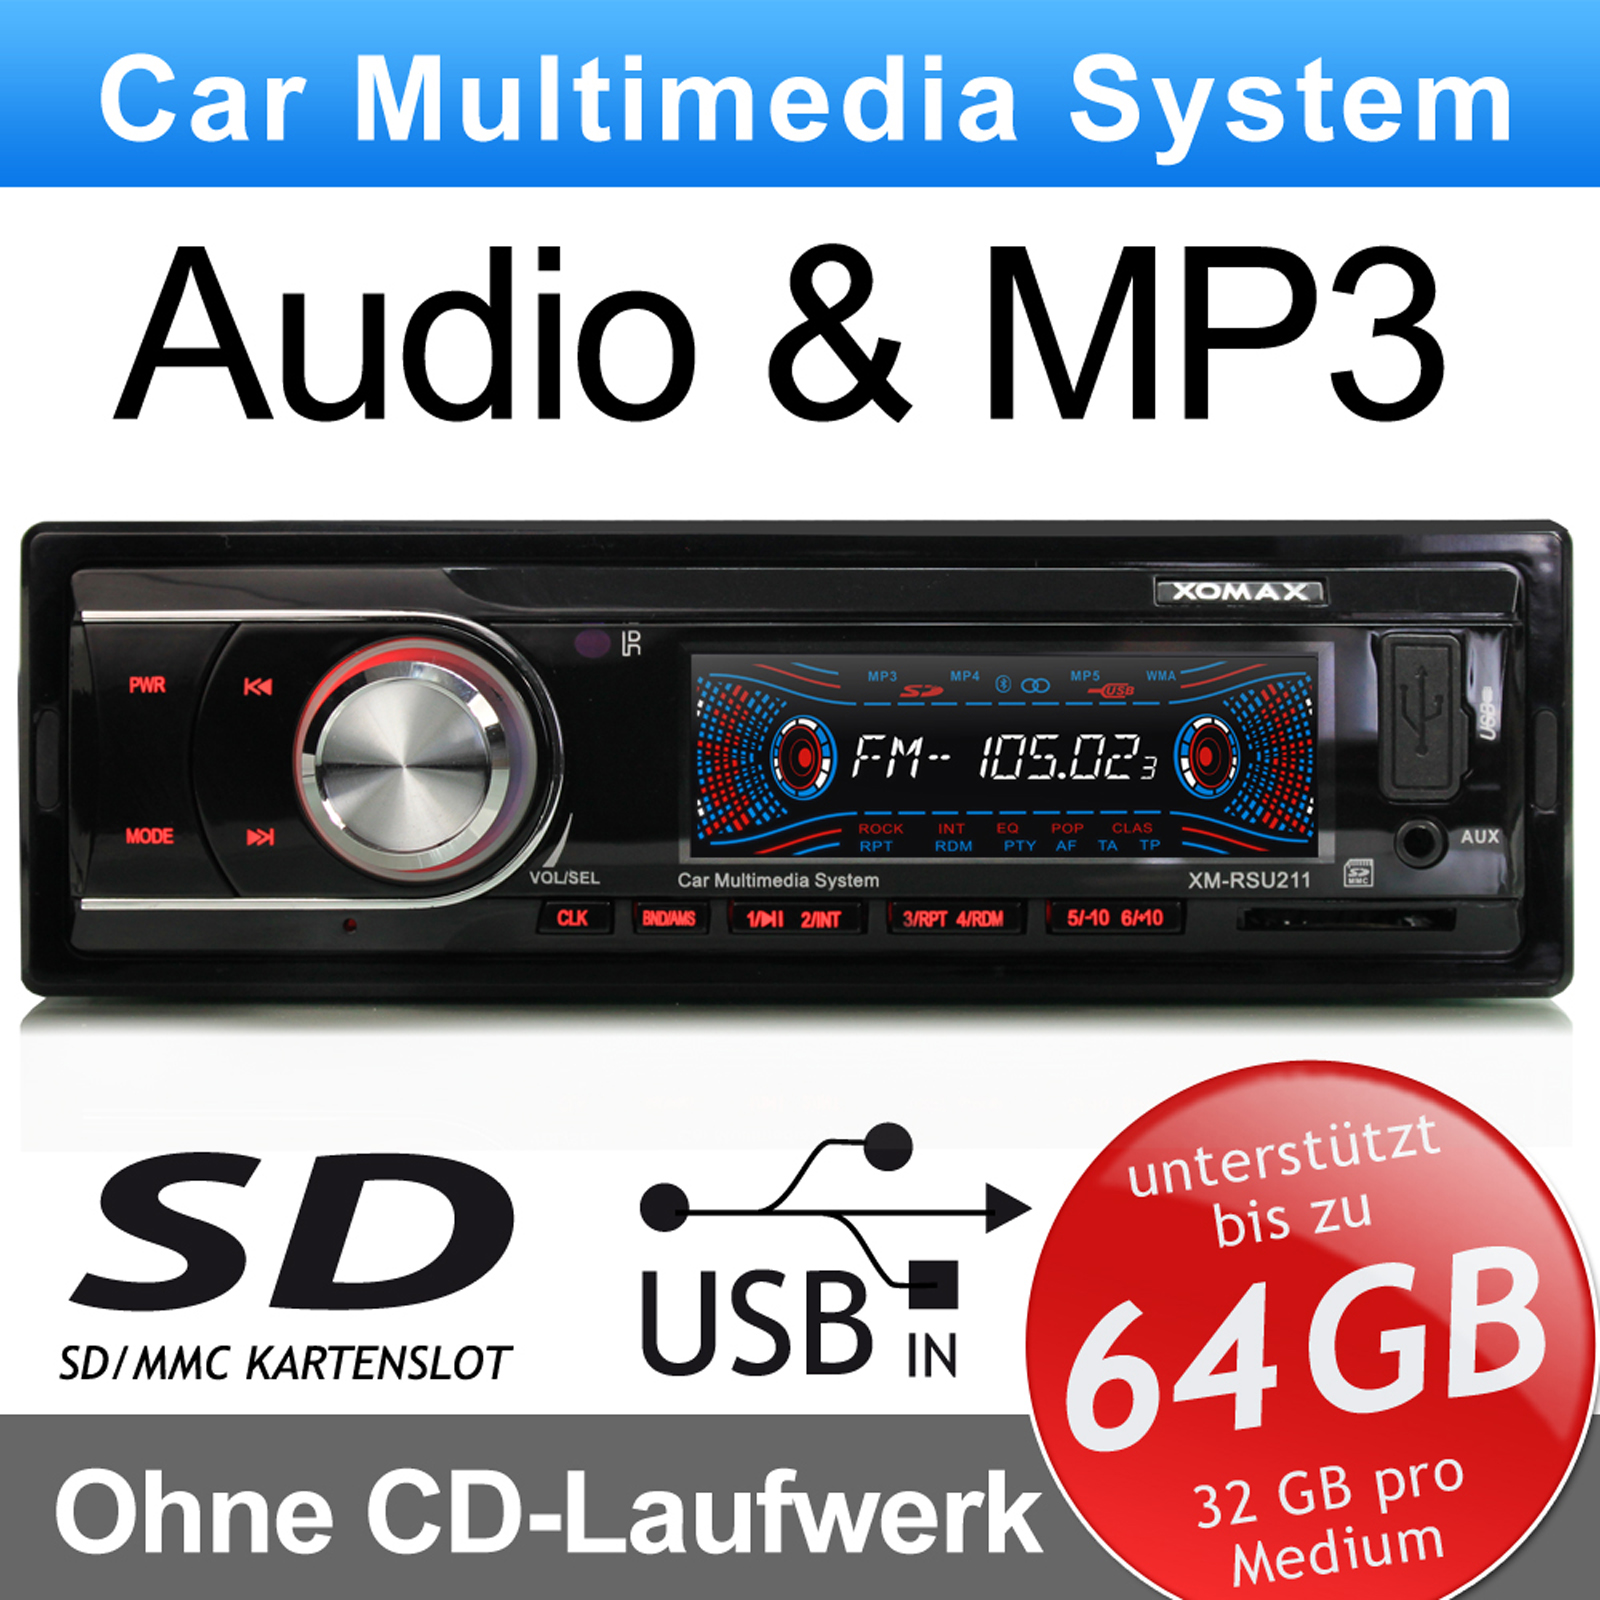 mp3 autoradio sd kartenslot usb anschluss aux in ohne cd beleuchtung rot 1 din ebay. Black Bedroom Furniture Sets. Home Design Ideas